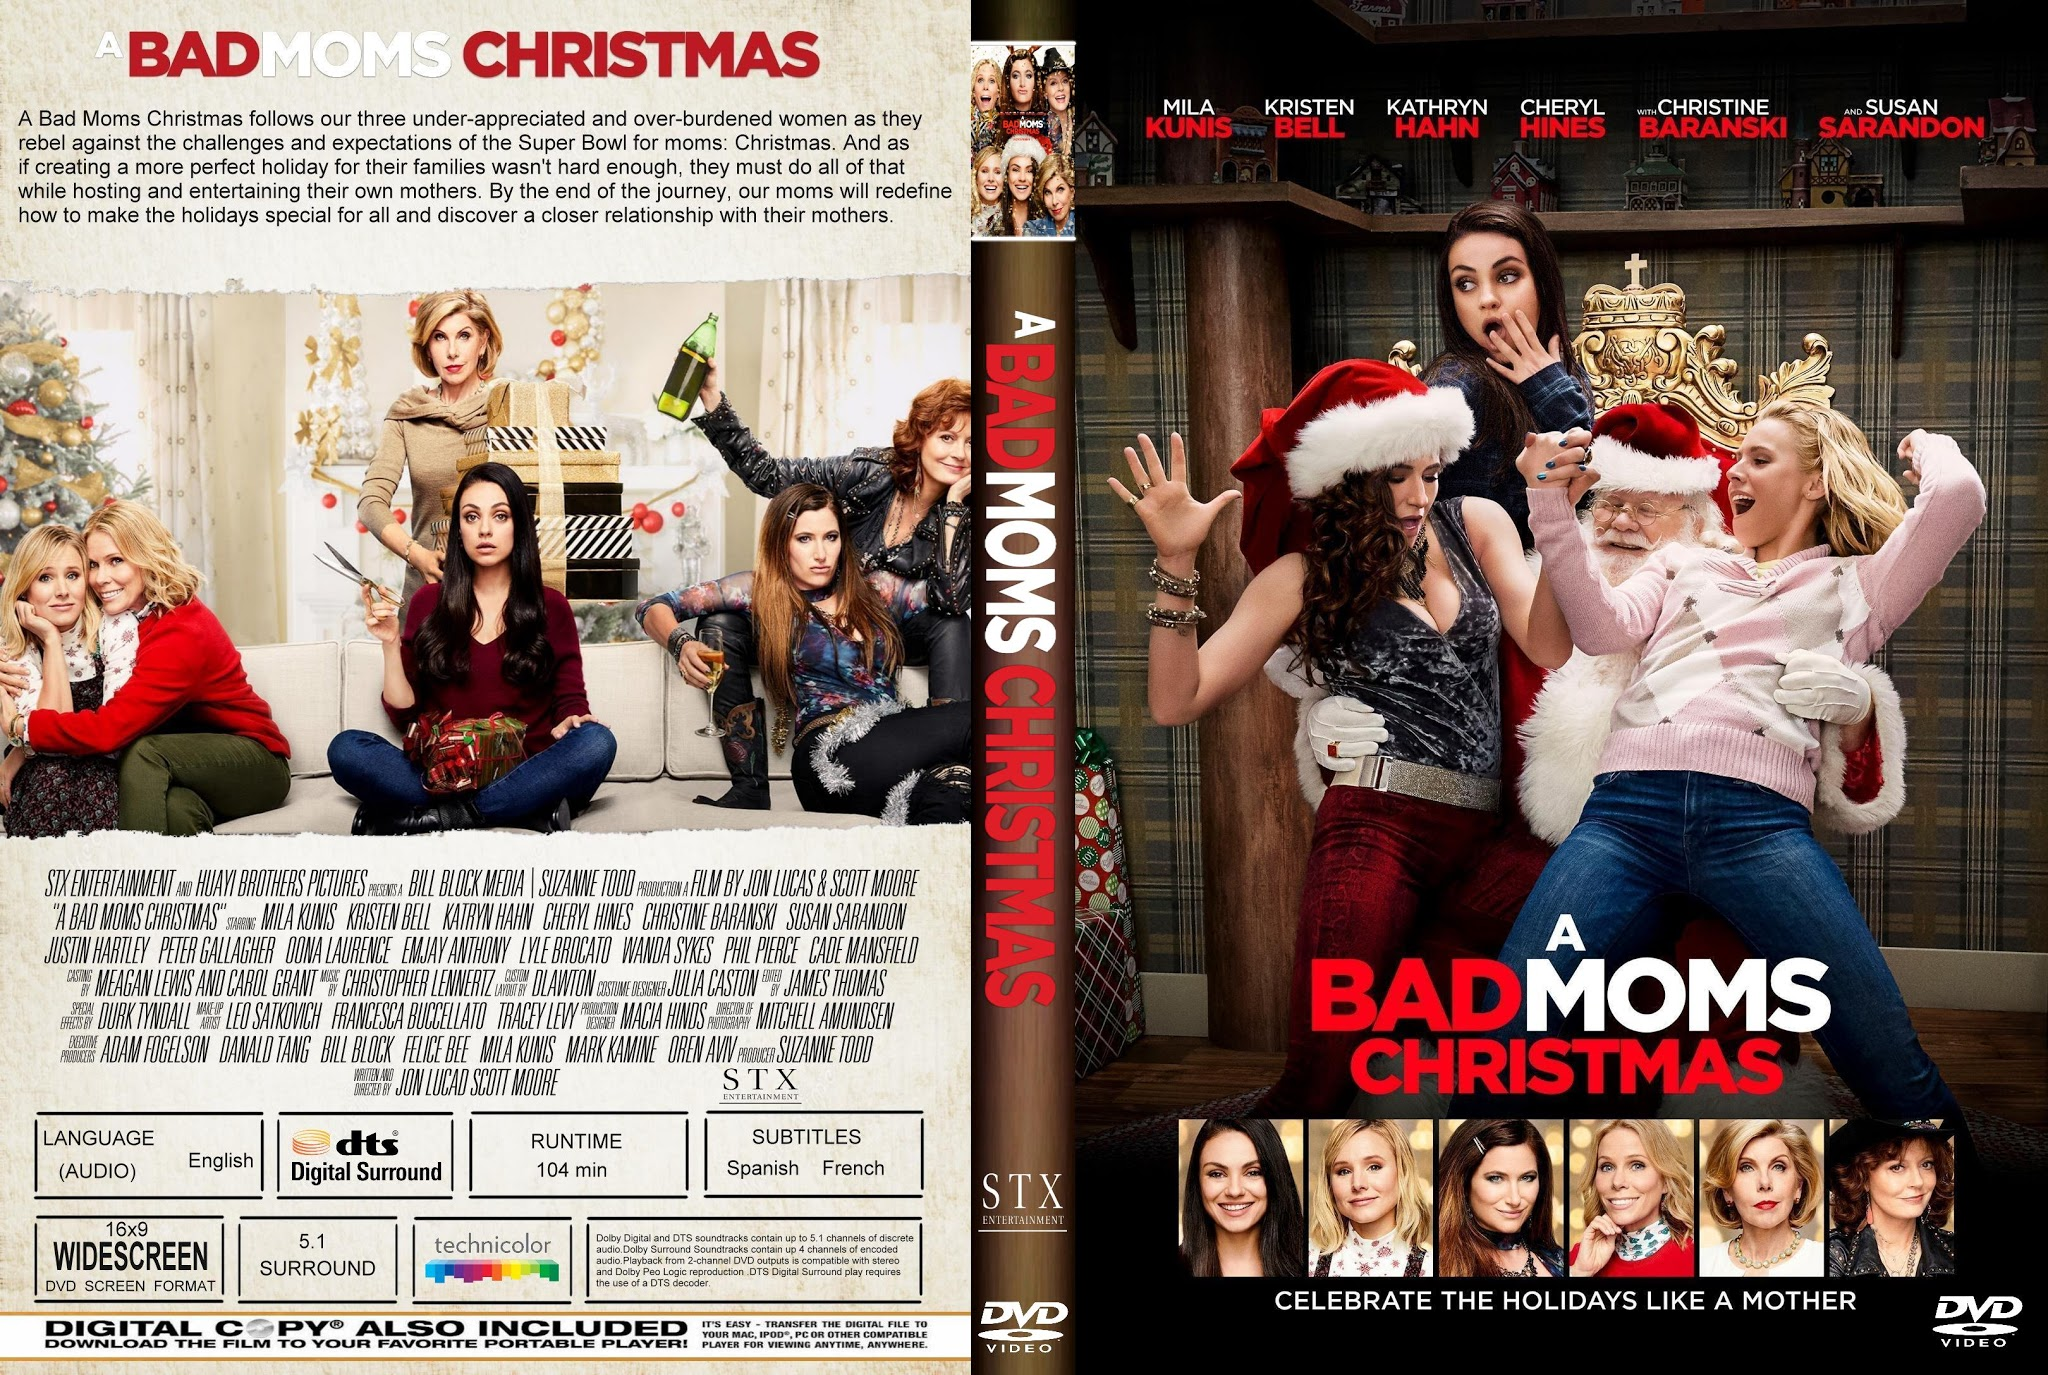 a bad moms christmas soundtrack download